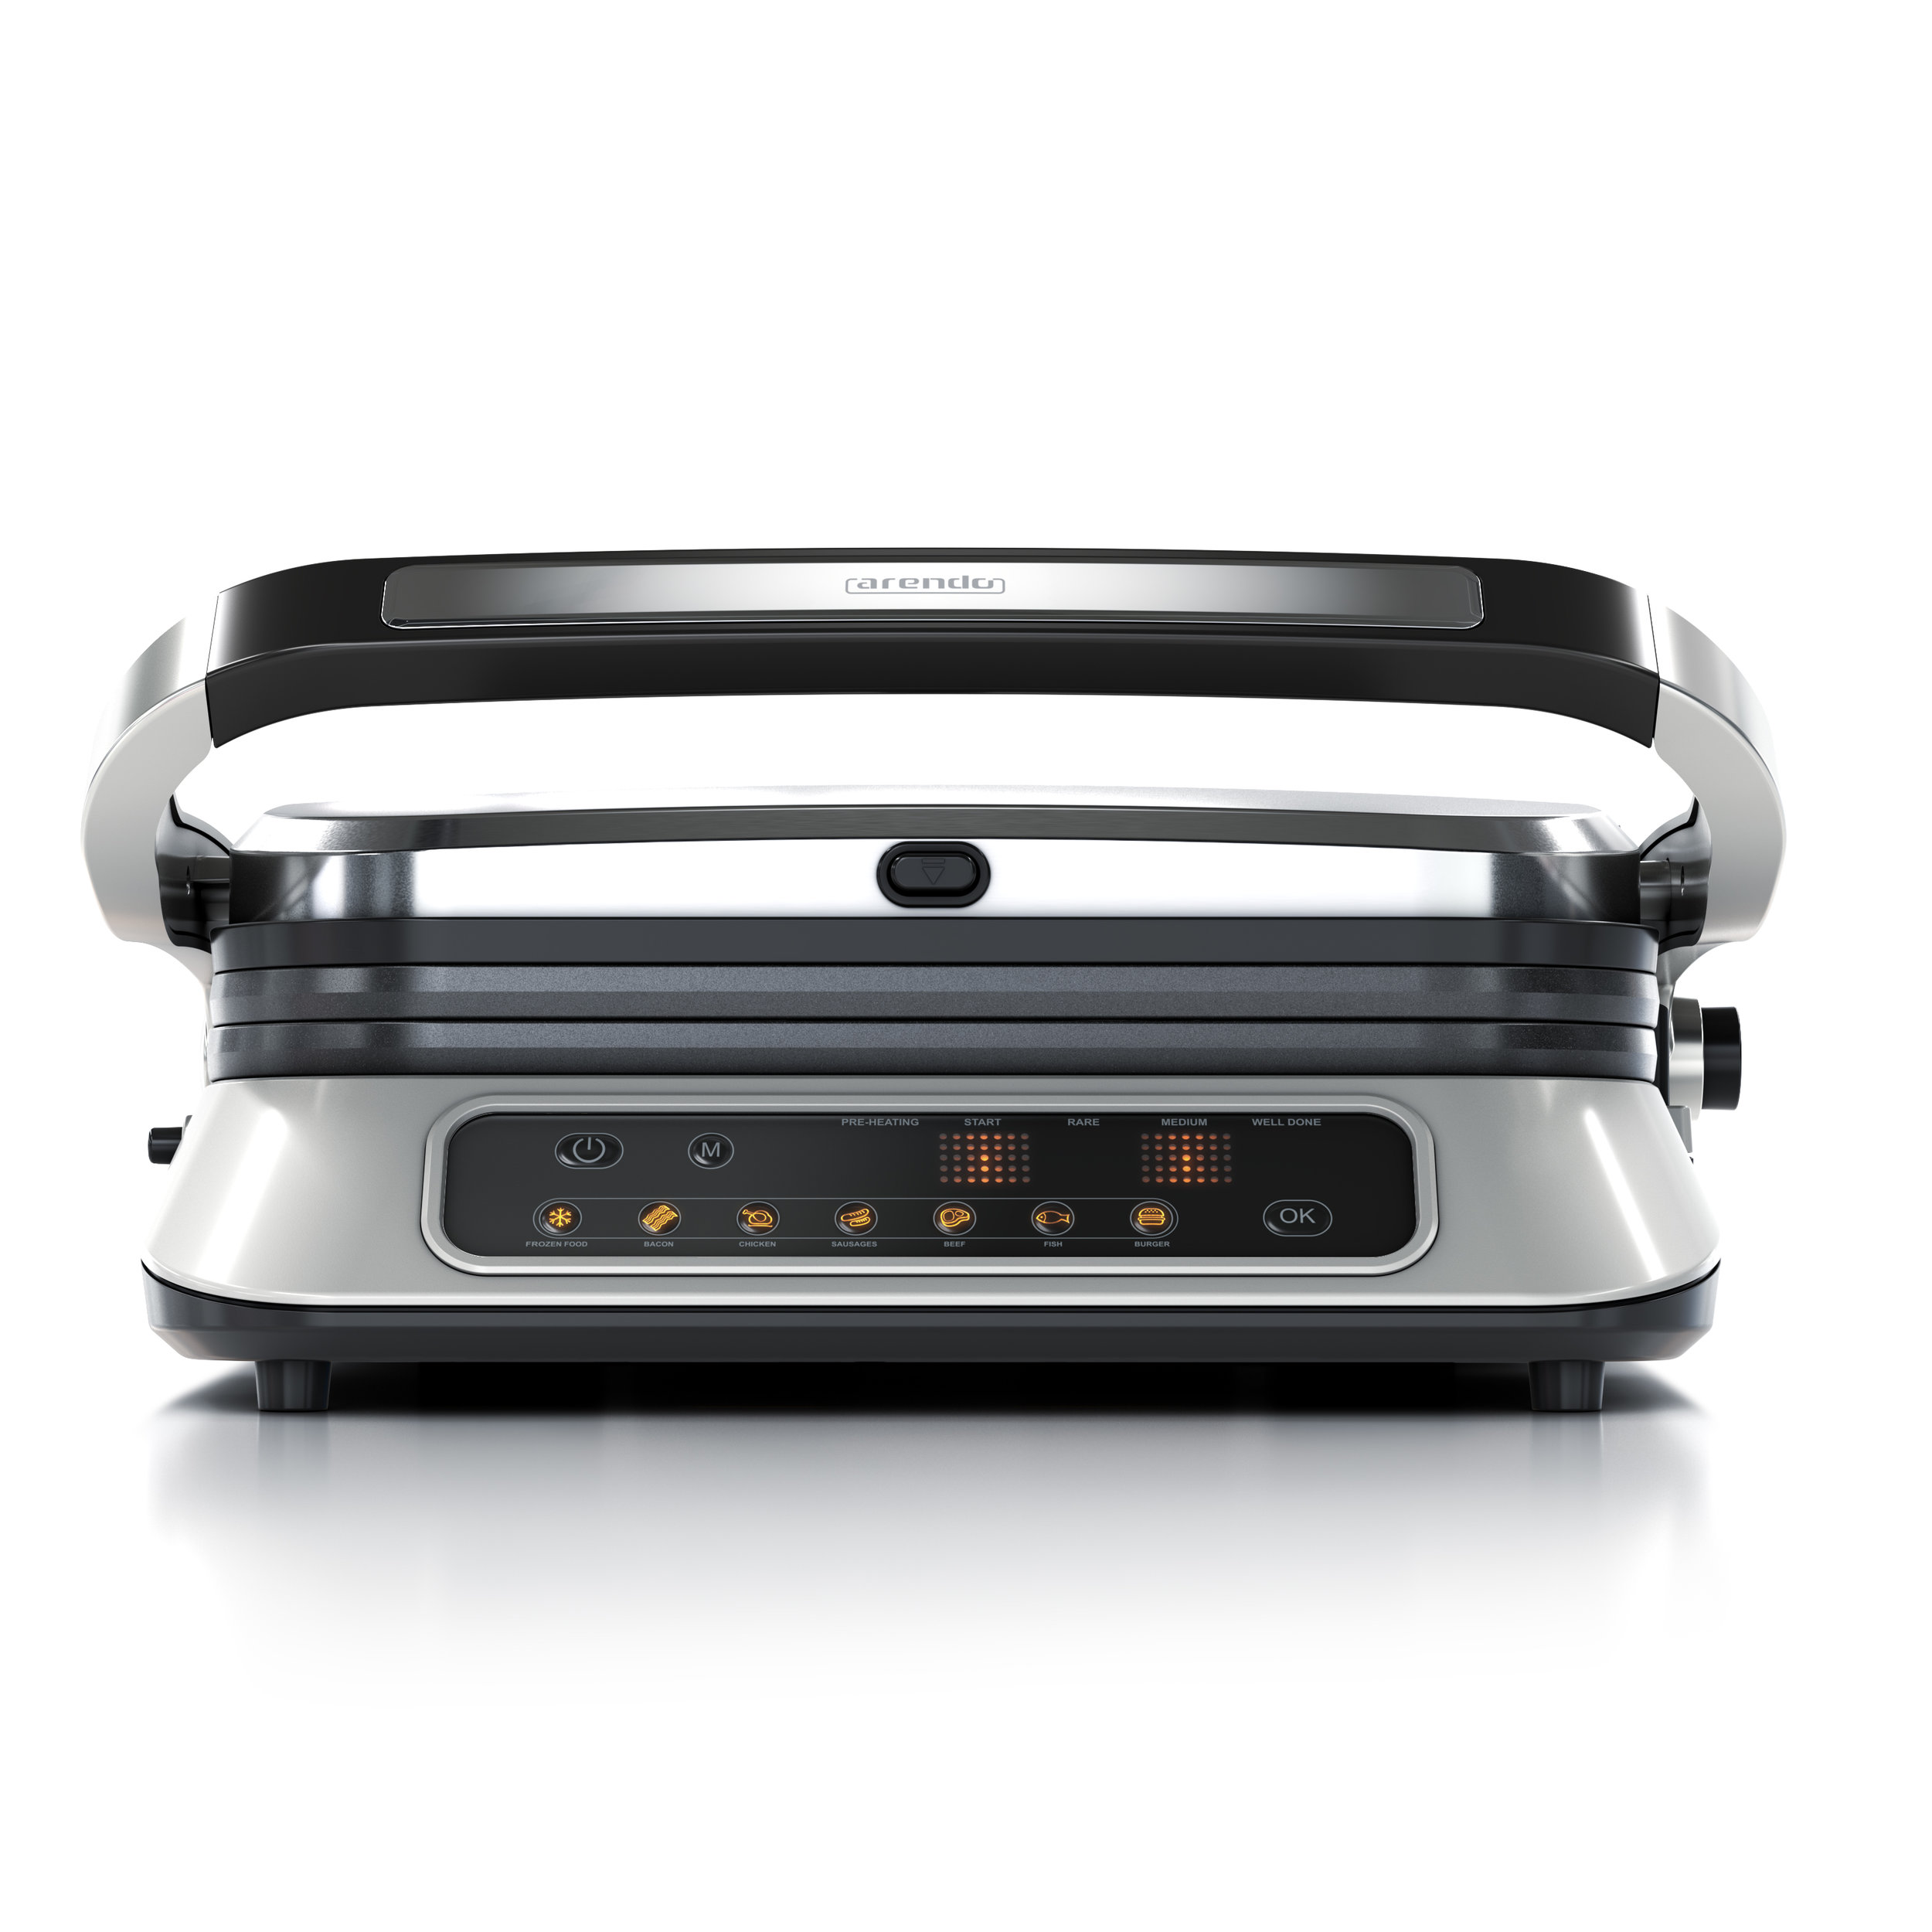 Contactgrill_Front.jpg